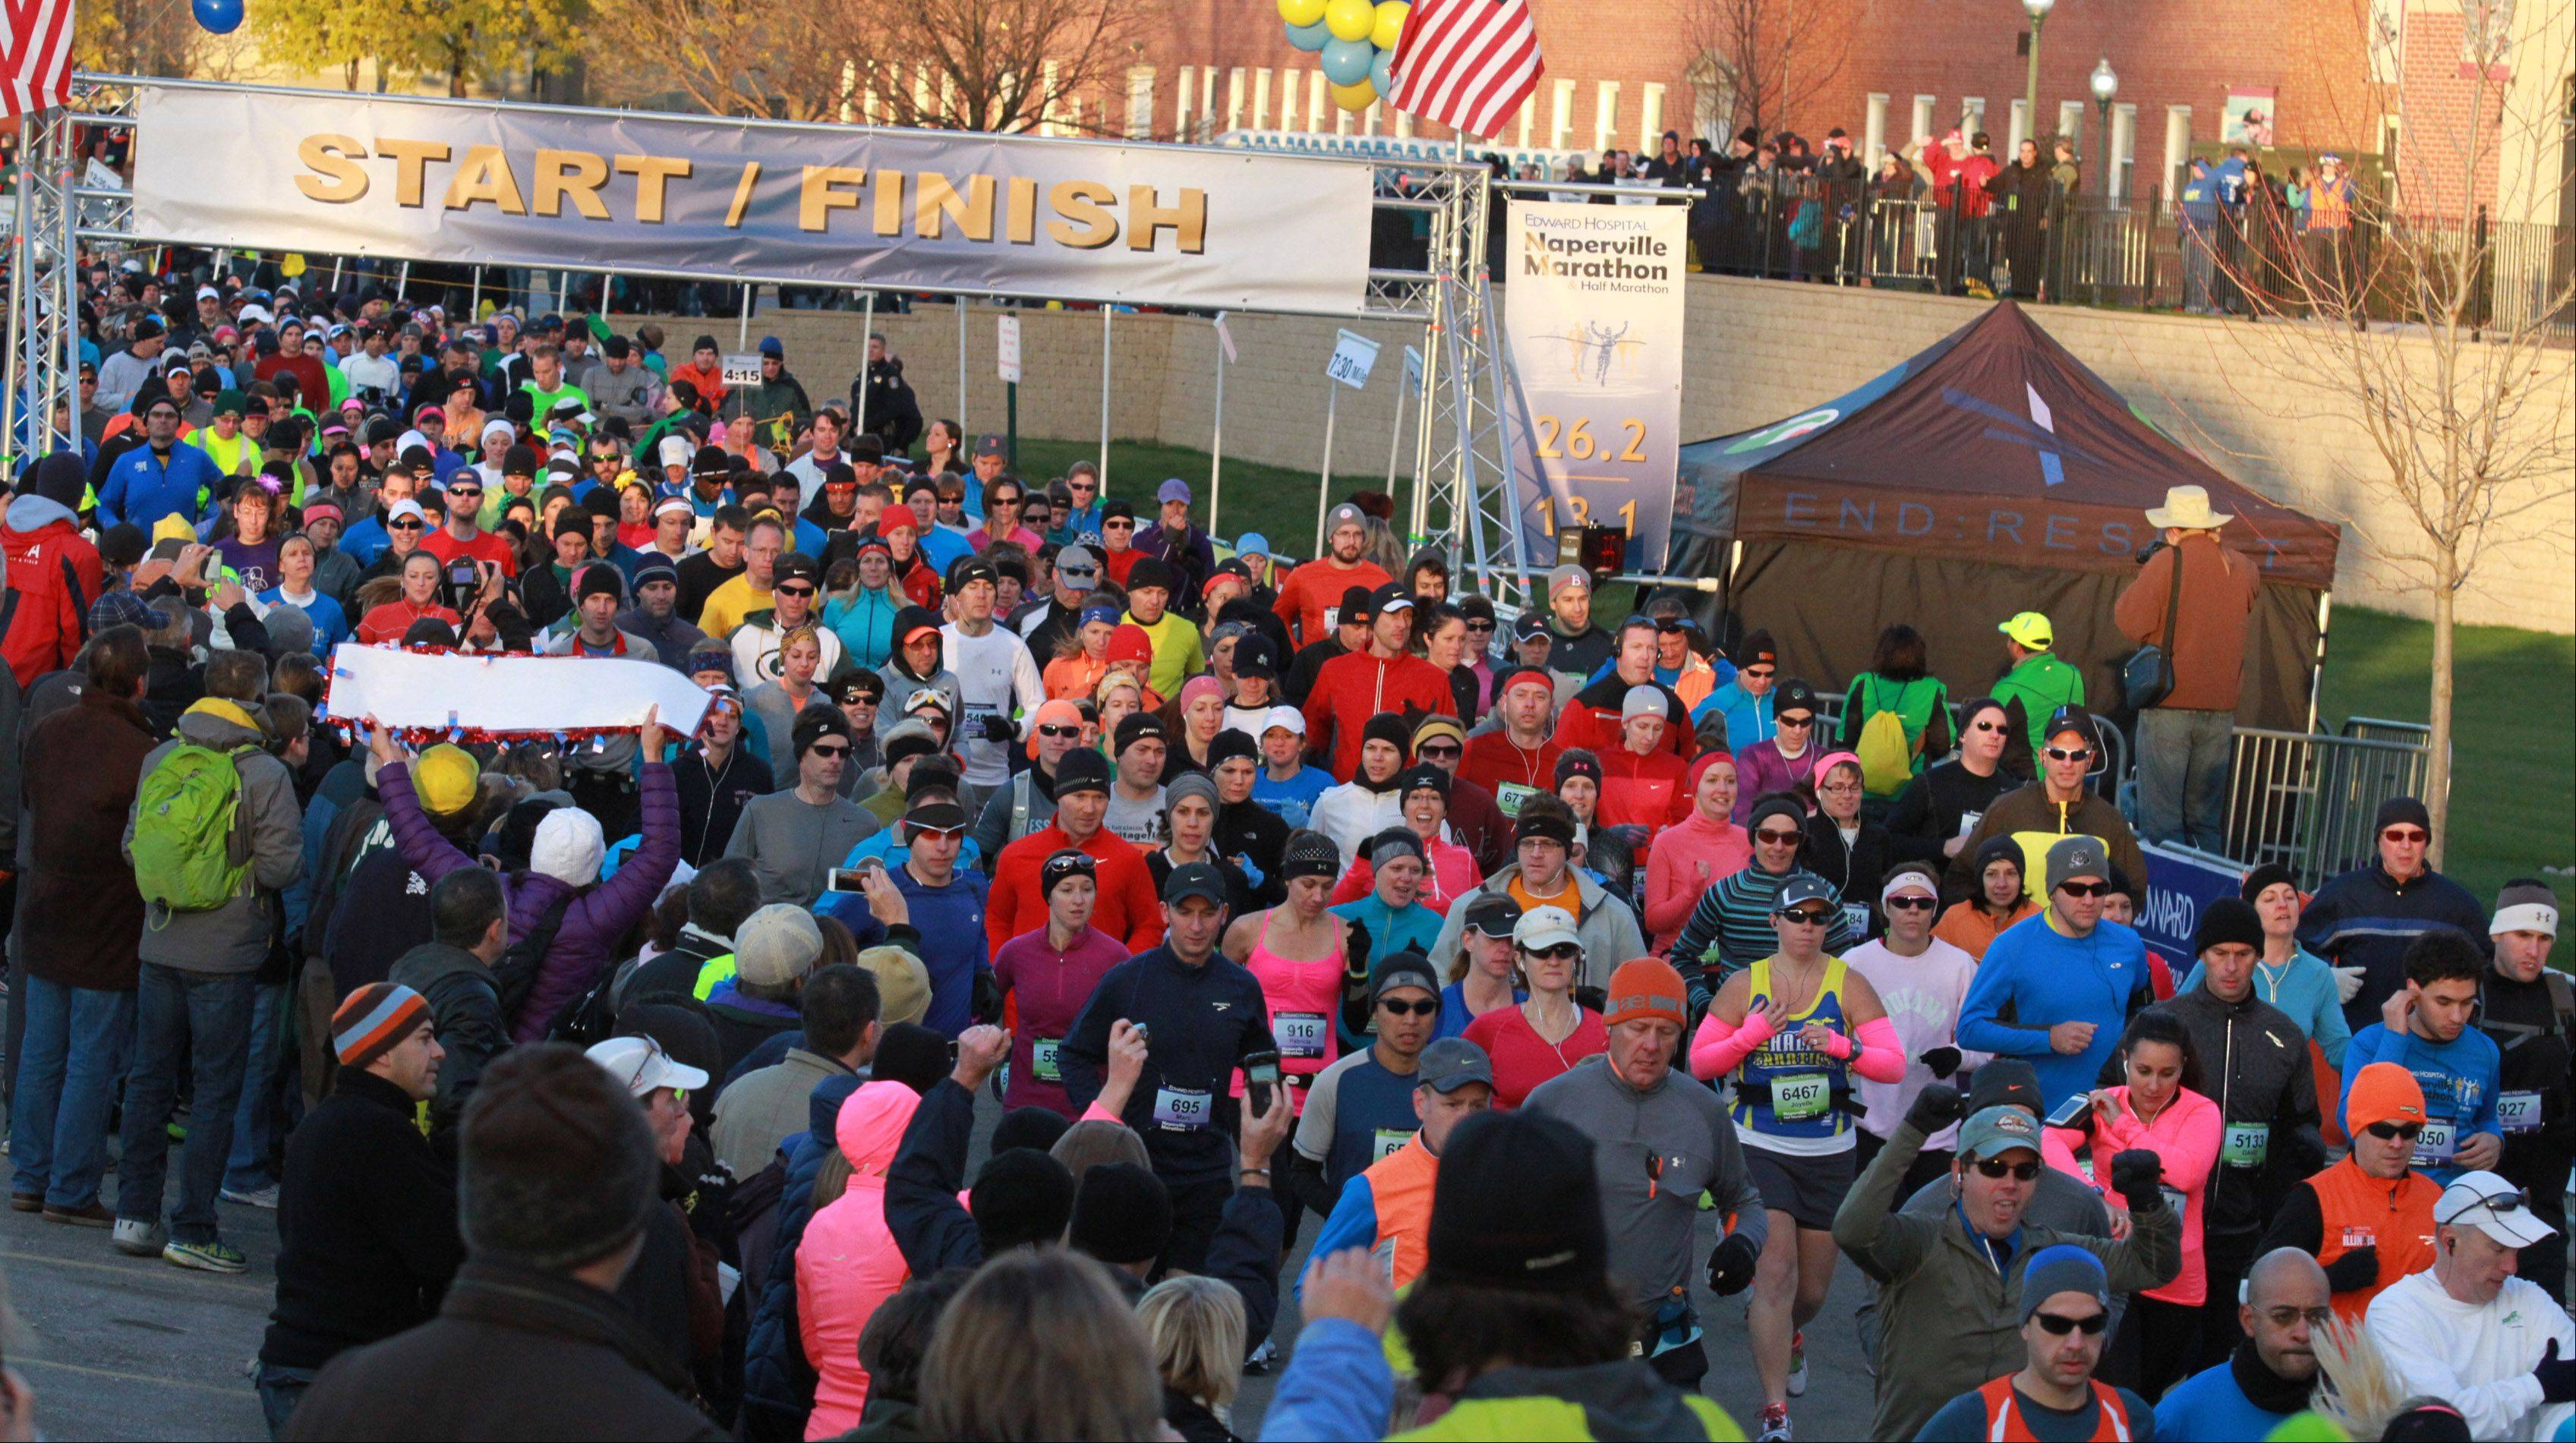 Spots available in this year�s Edward Hospital Naperville Marathon and Half Marathon will double to 7,000, organizers said Monday. The second running of the races will be Nov. 9 and organizers are working to finalize the course.